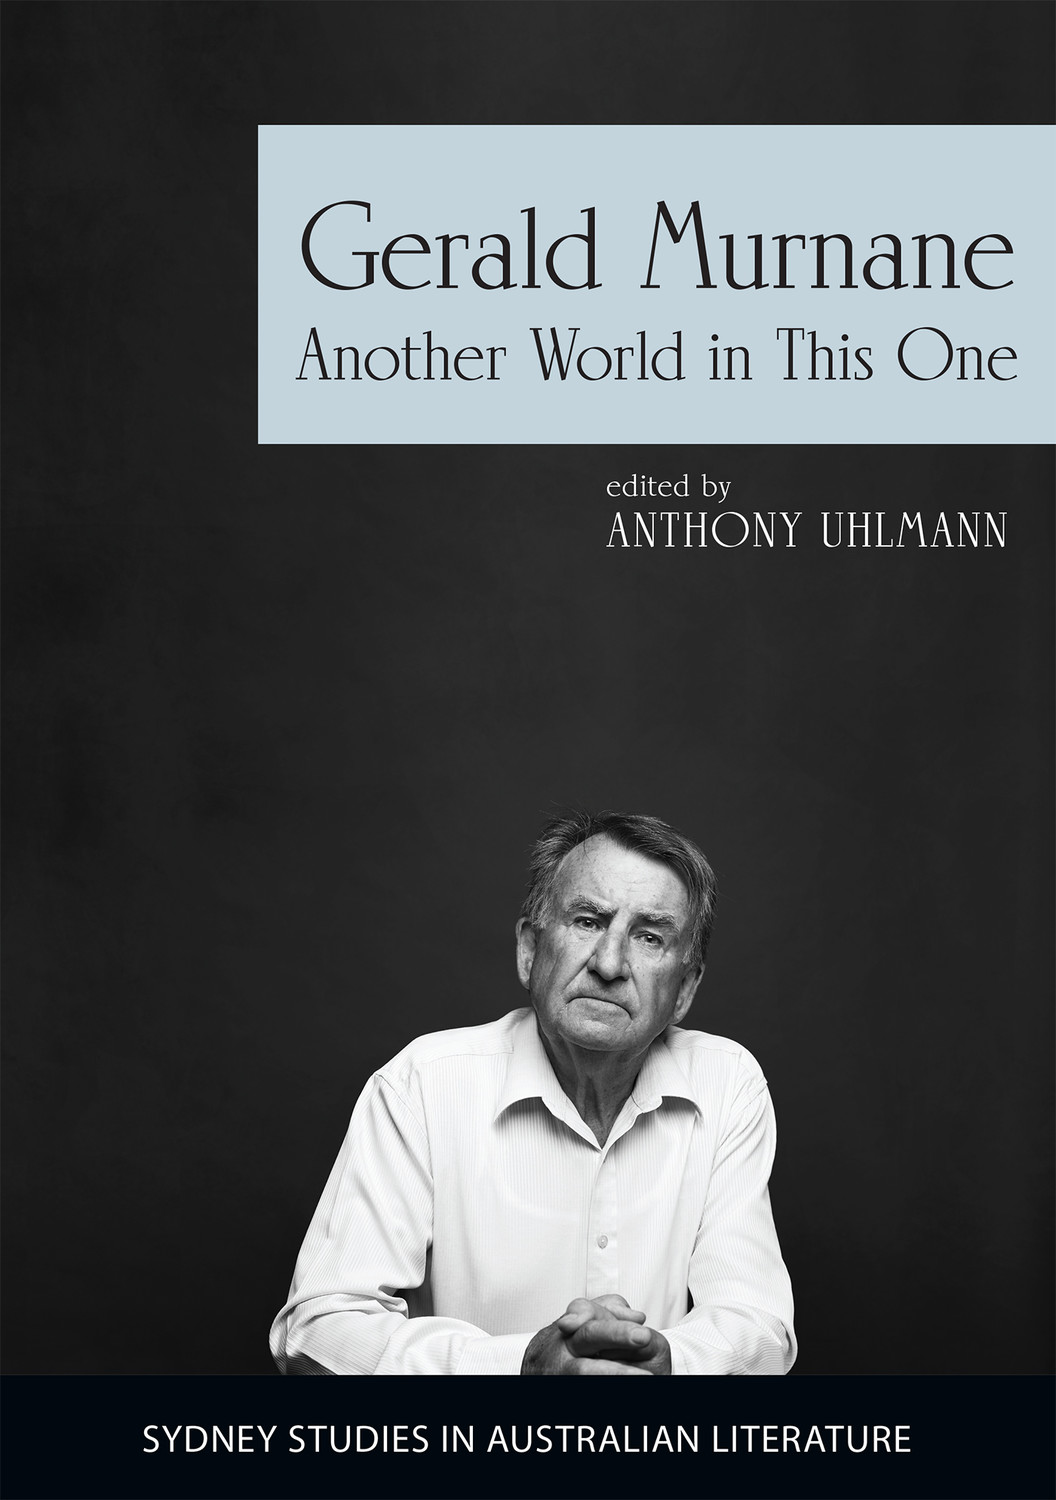 Gerald Murnane: Another World in This One